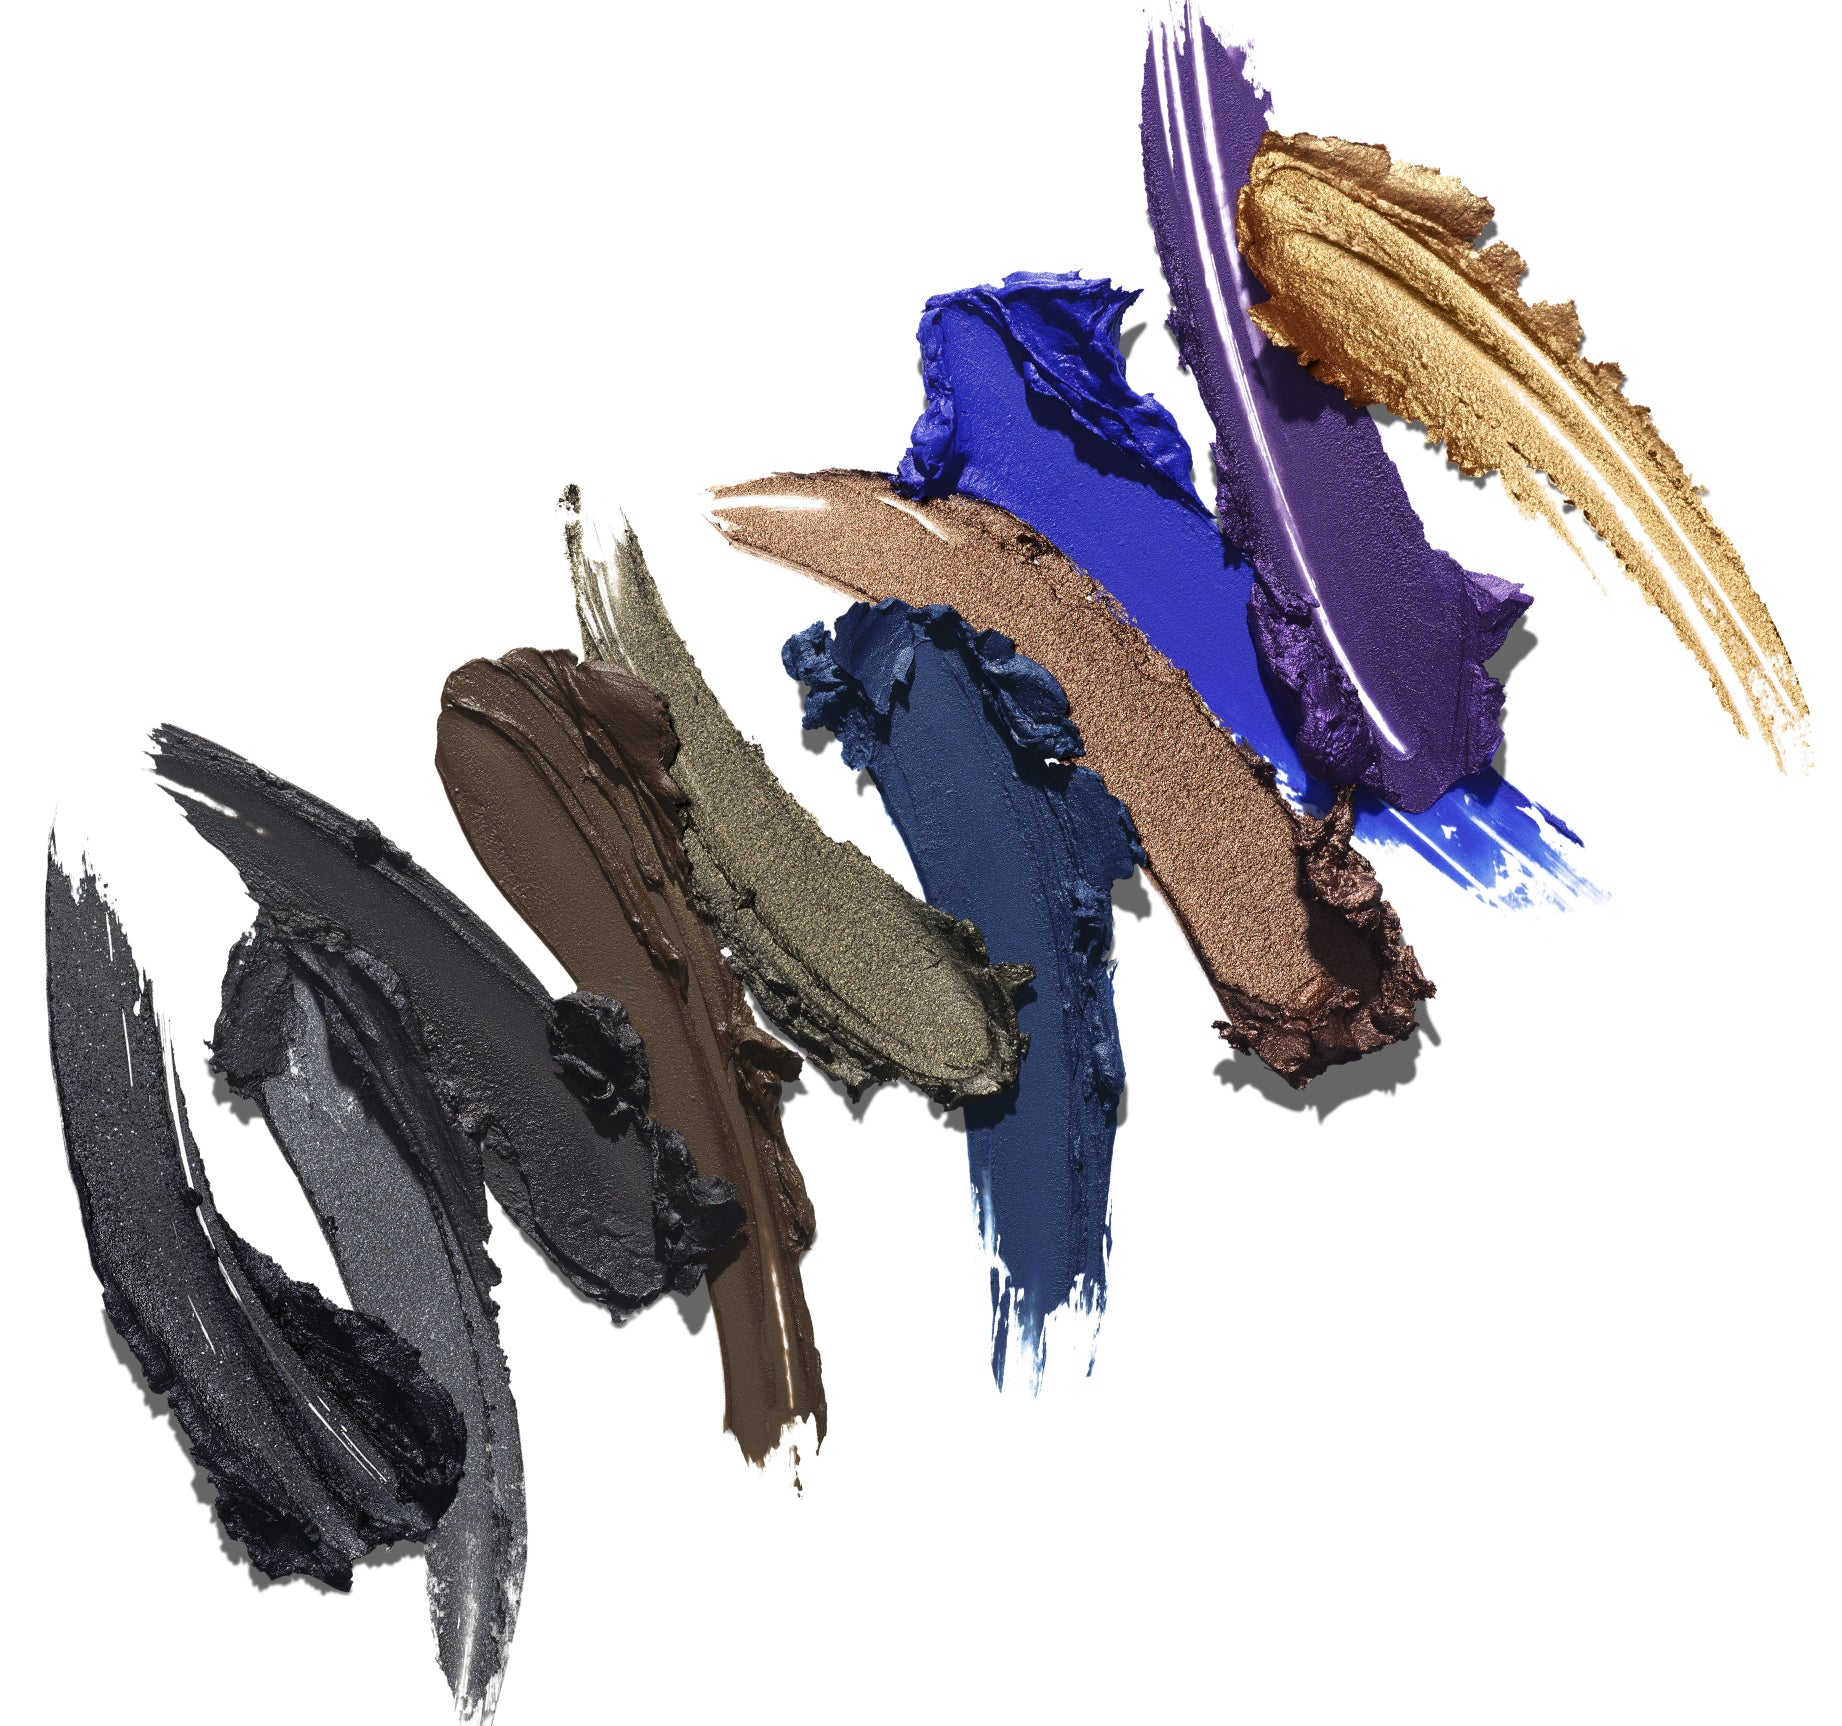 GEL LINER - JET SMEARS, view larger image